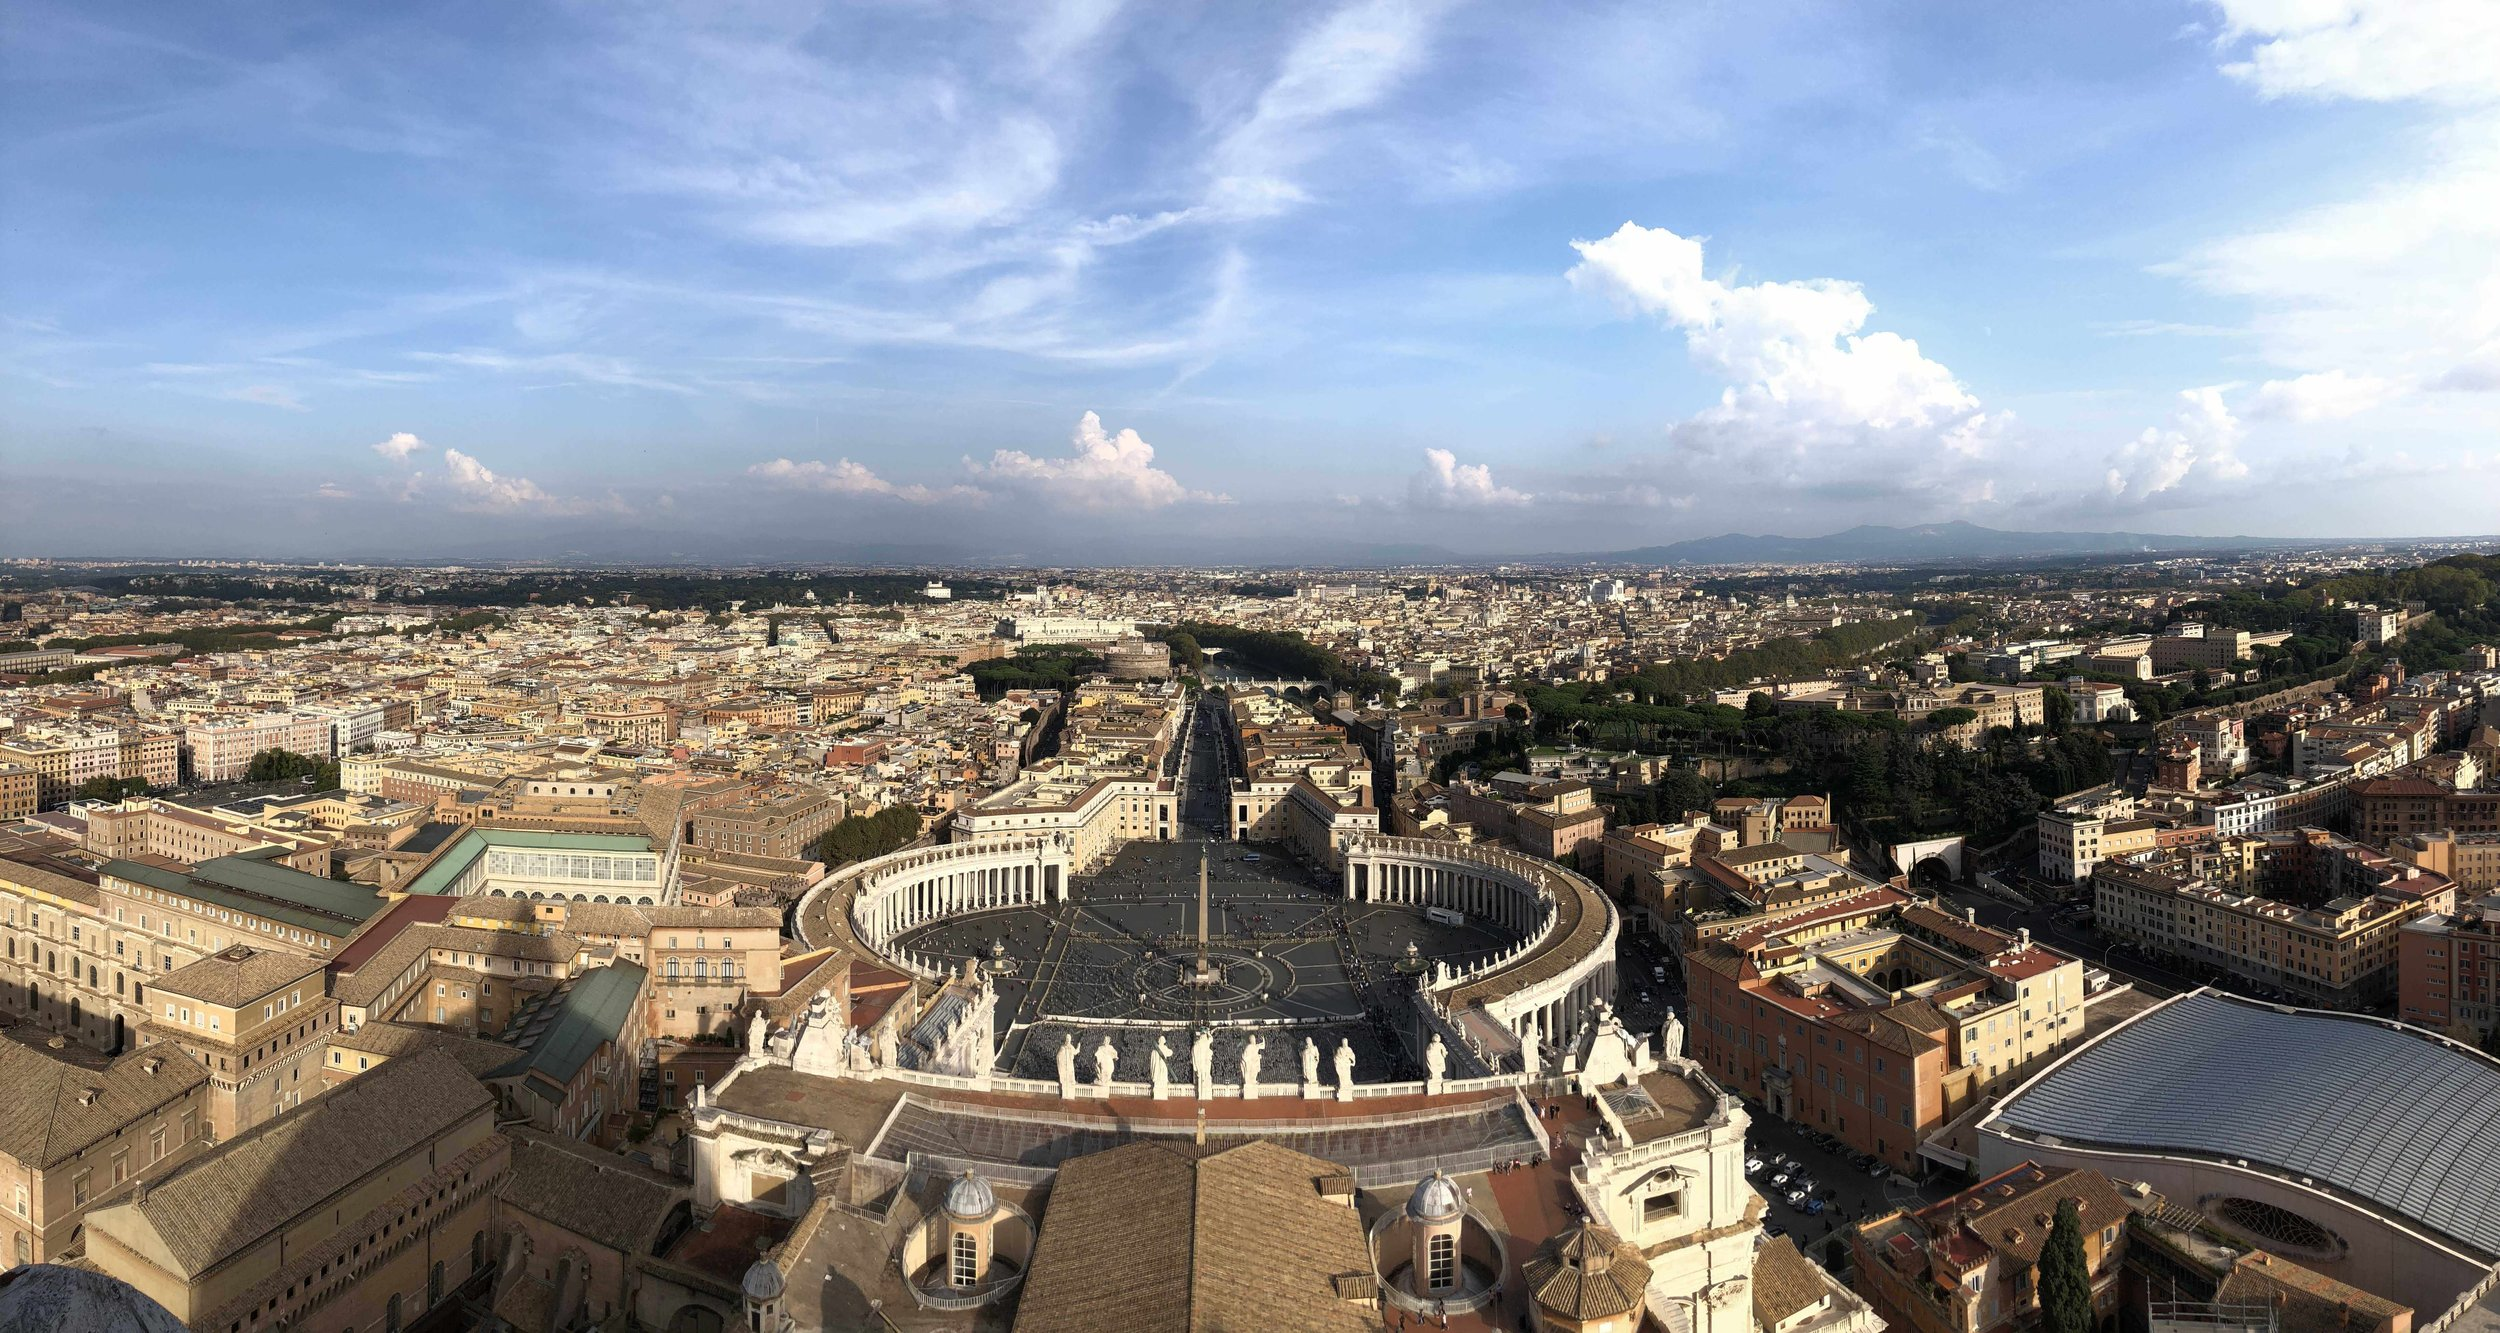 View from the top of the Dome